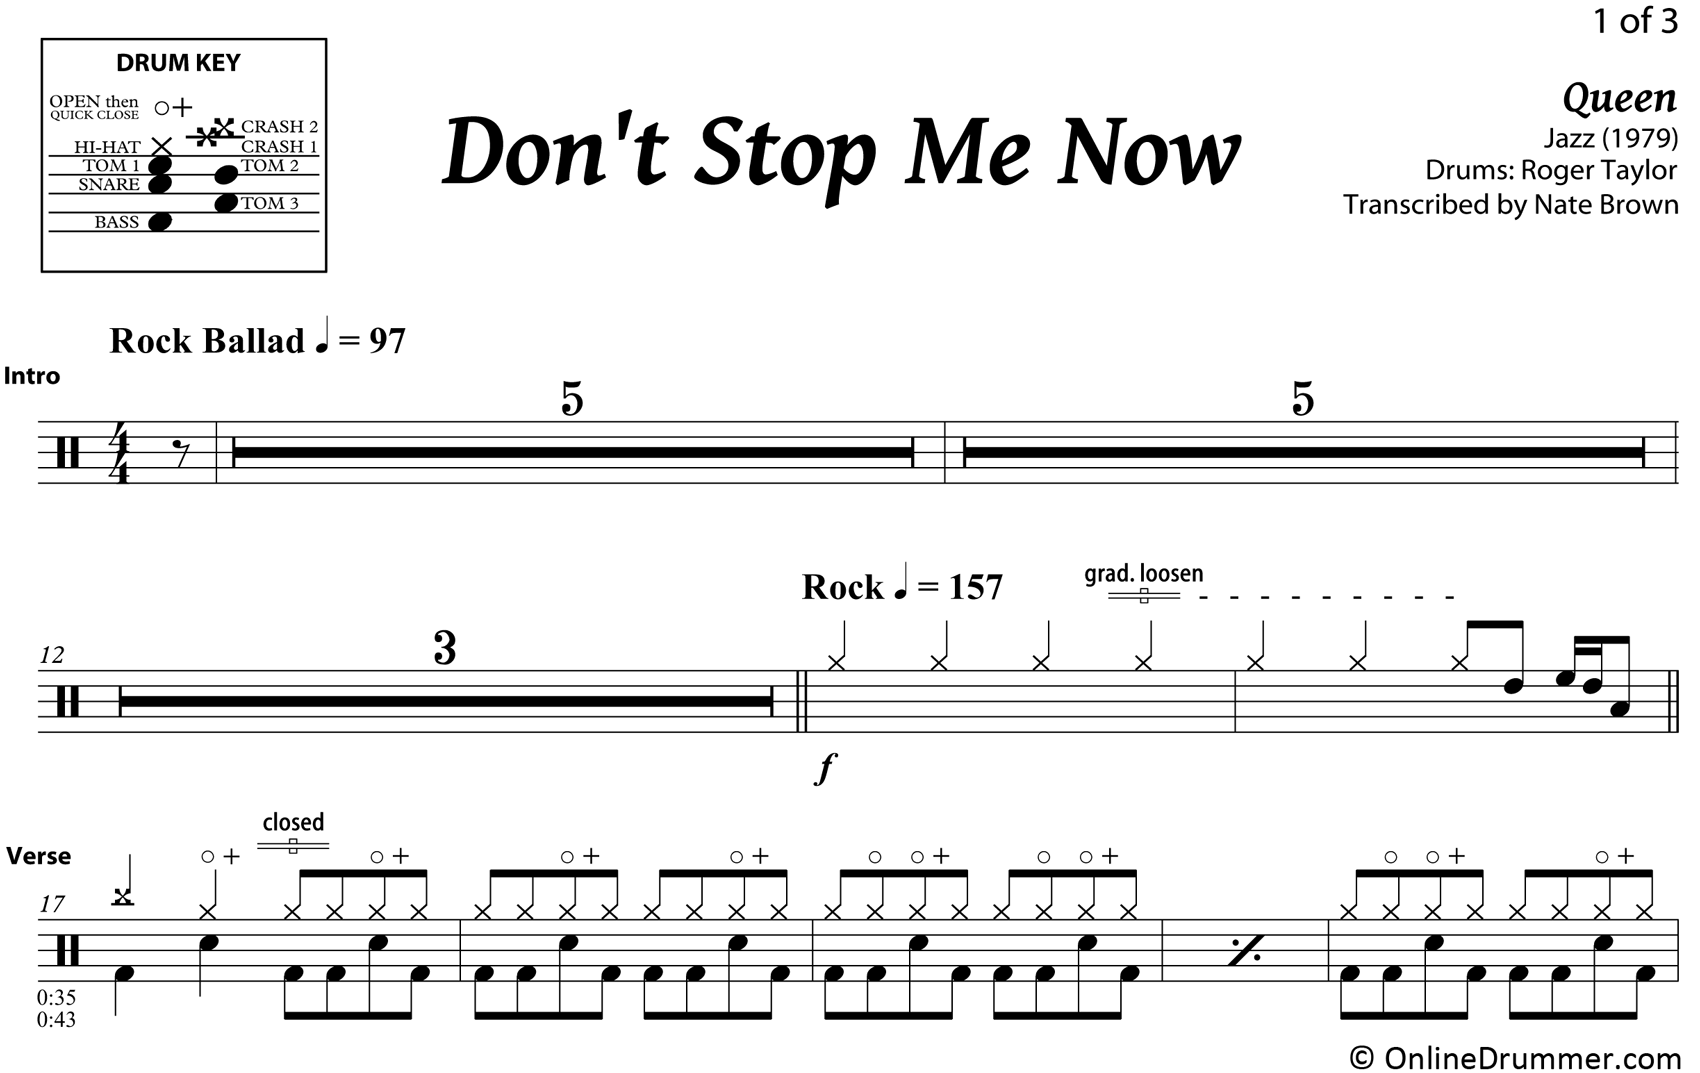 Don't Stop Me Now - Queen - Drum Sheet Music